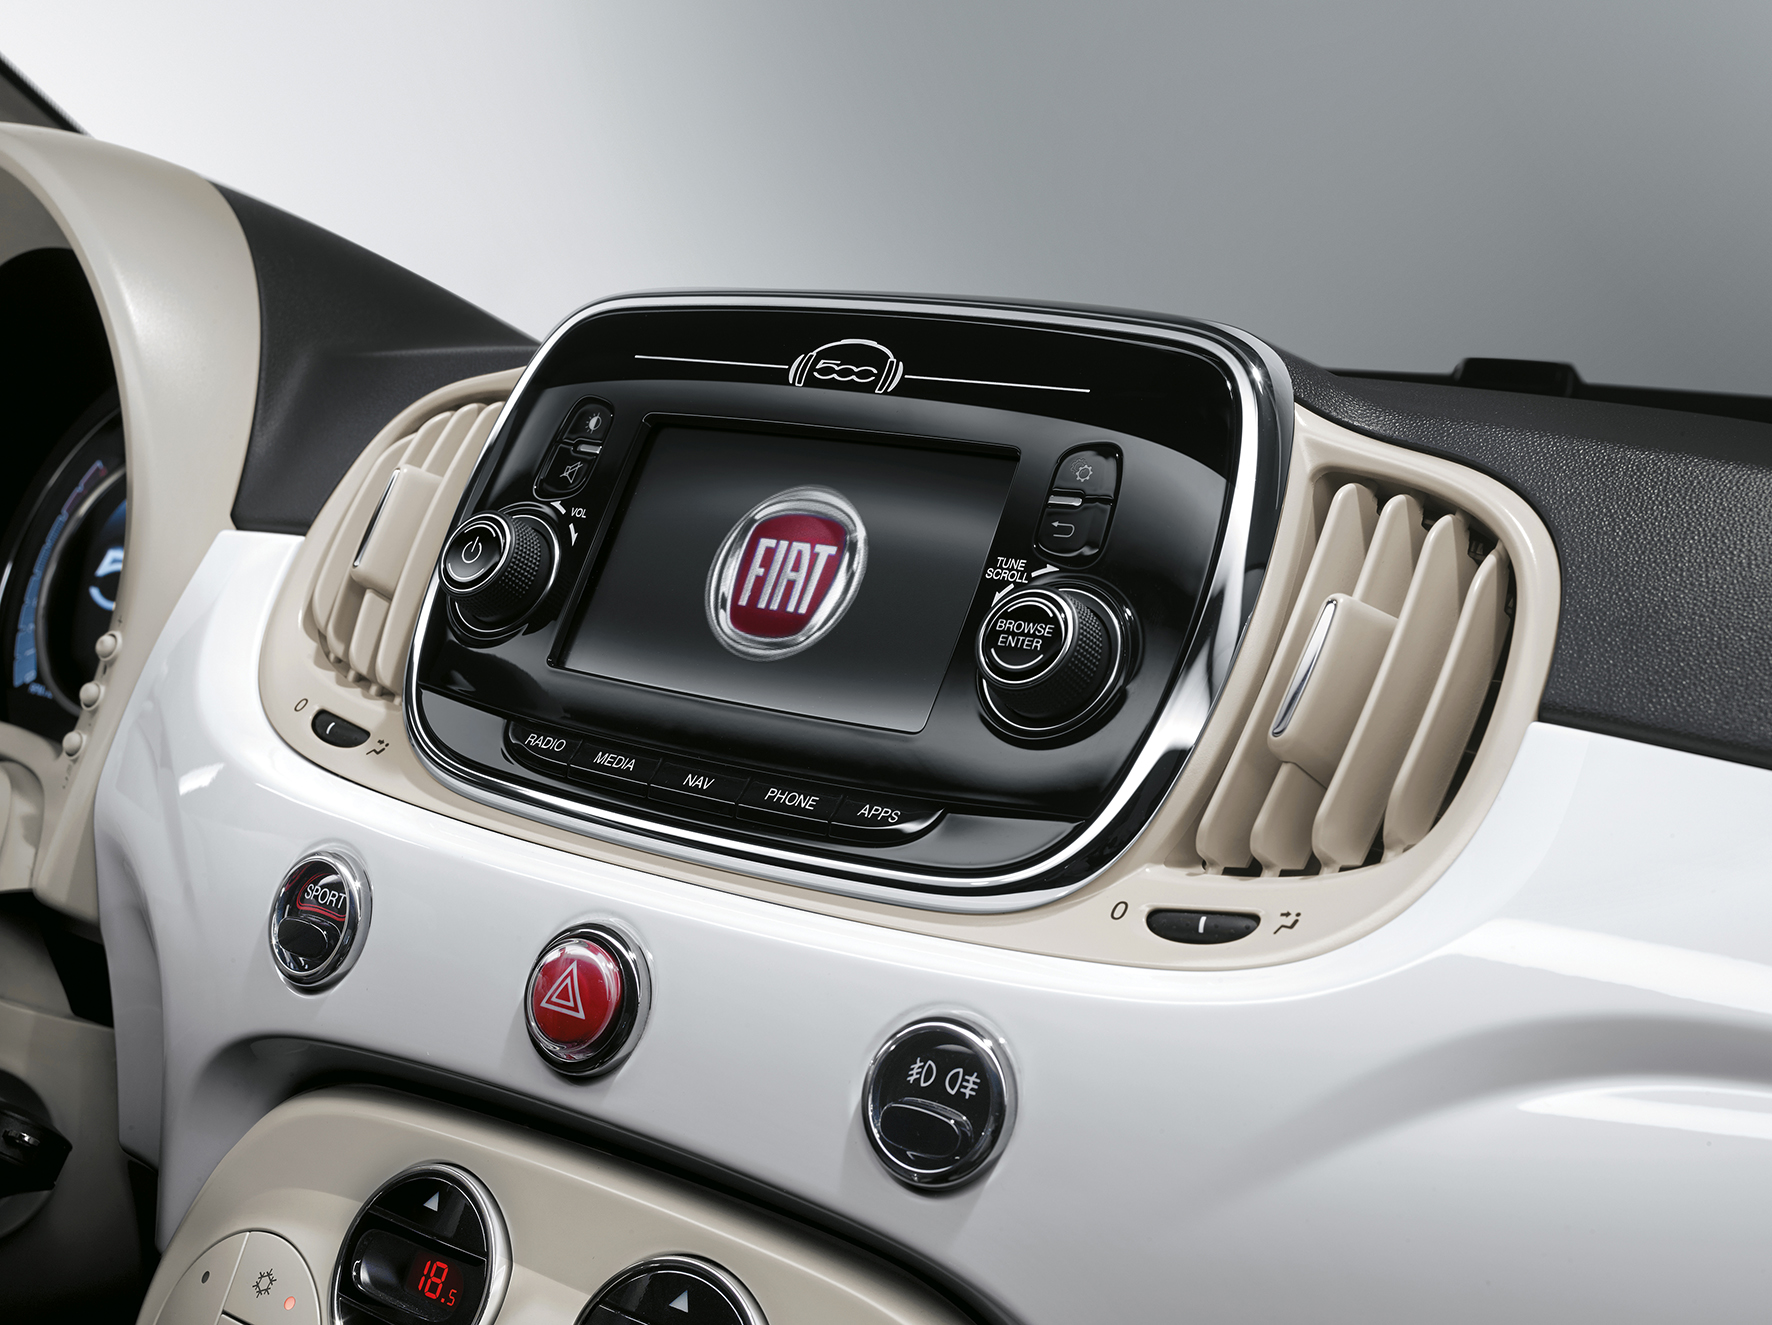 fiat 500 twinair turbo 80 lounge autotest en specificaties bij de tijd. Black Bedroom Furniture Sets. Home Design Ideas